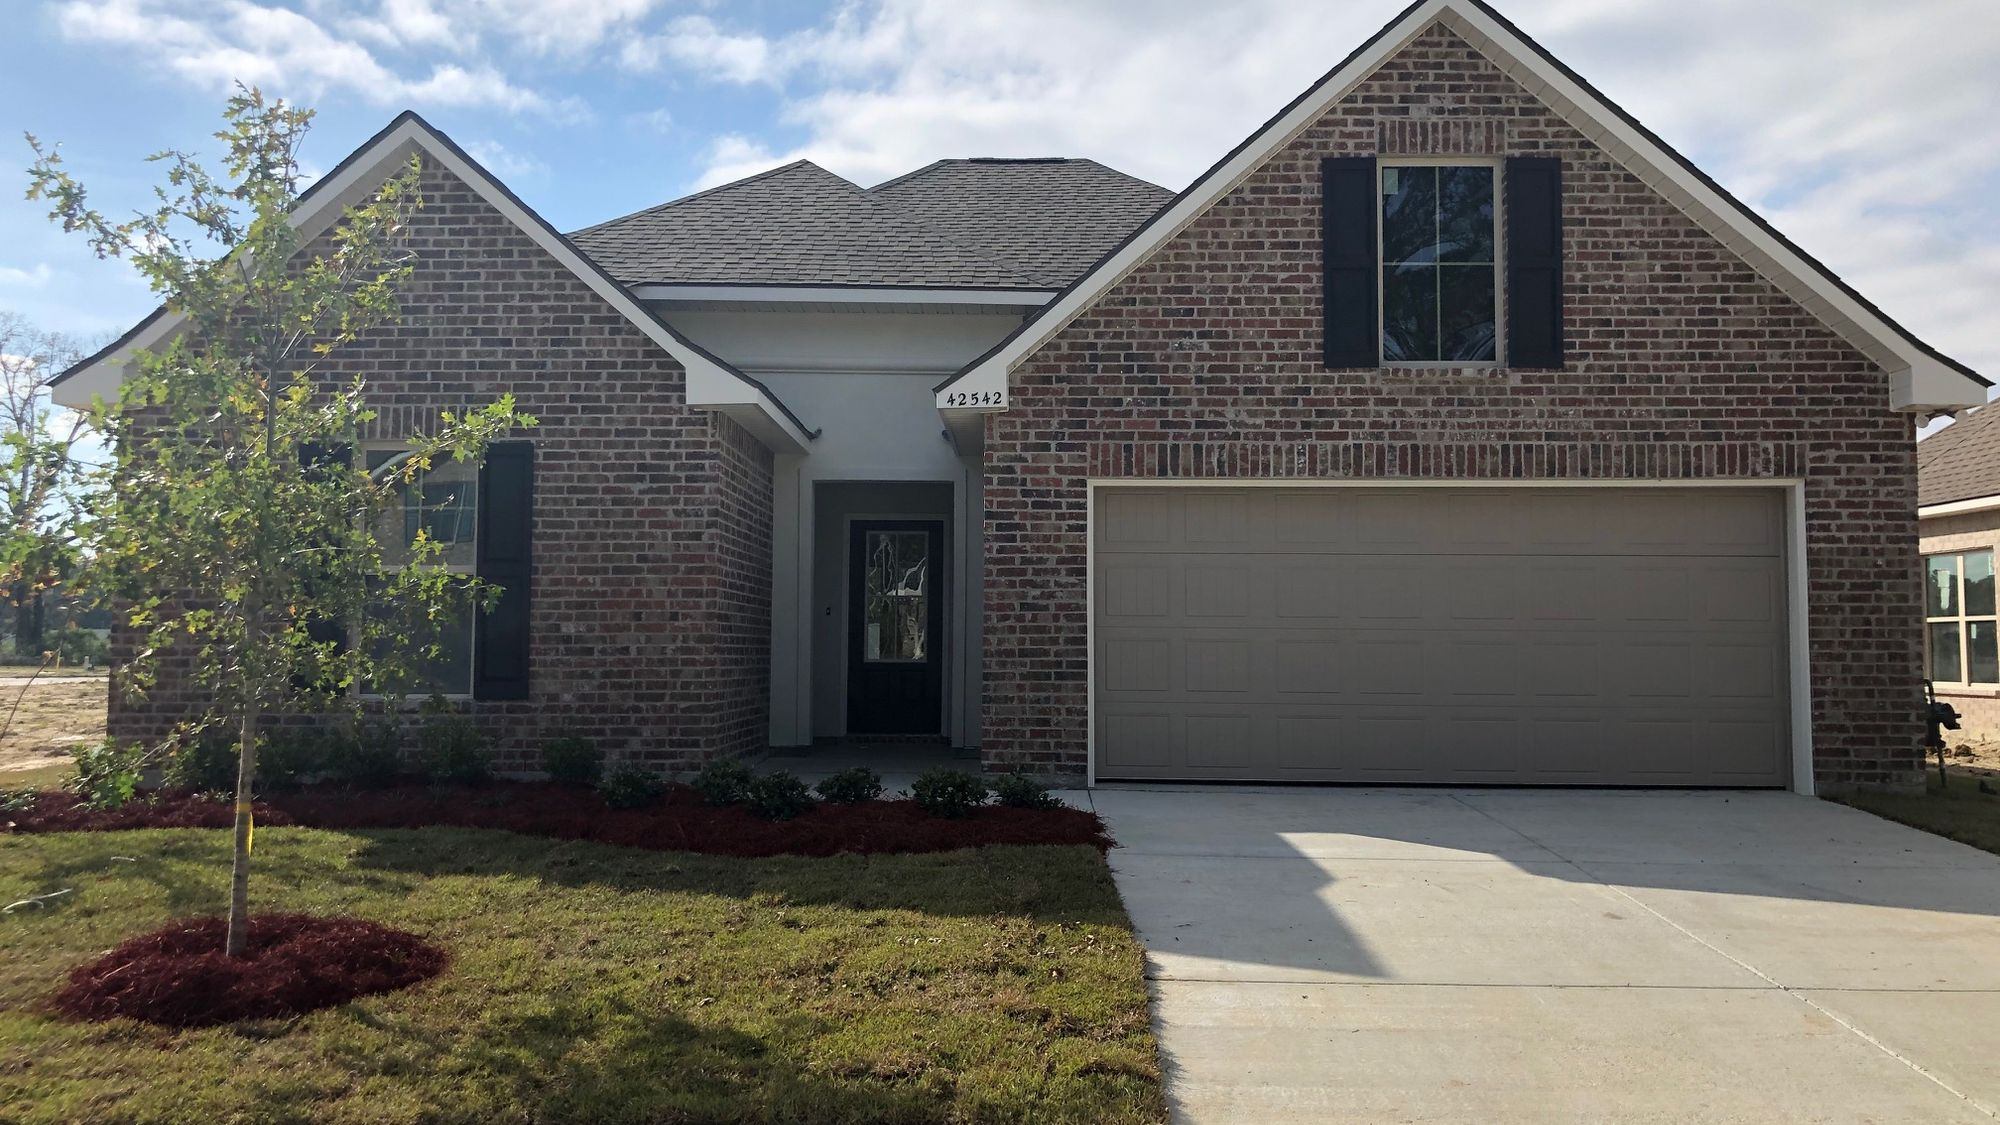 Front View - Cedar Springs Community - DSLD Homes Gonzales